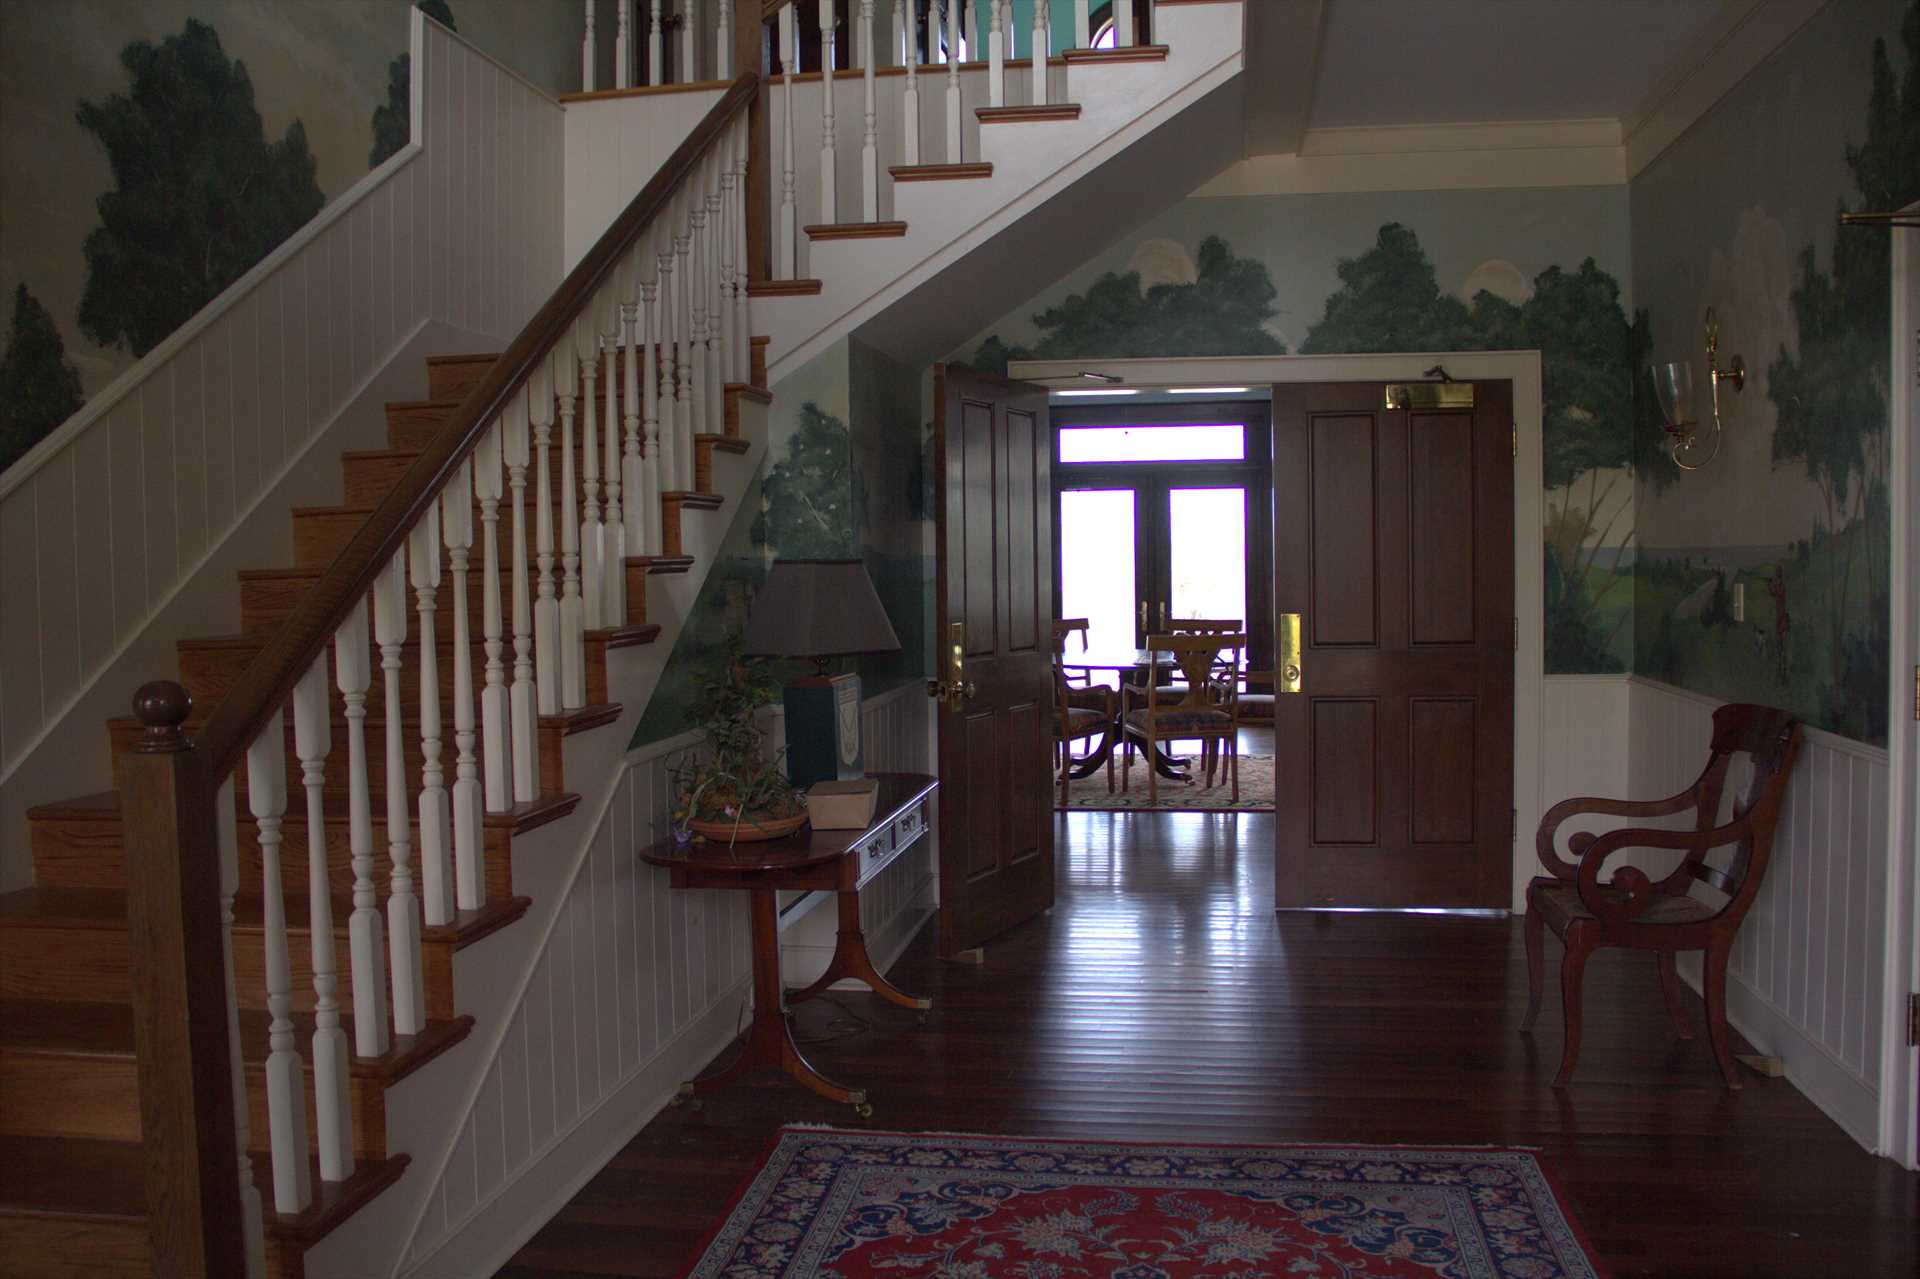 You will find a grand staircase and hand painted murals.